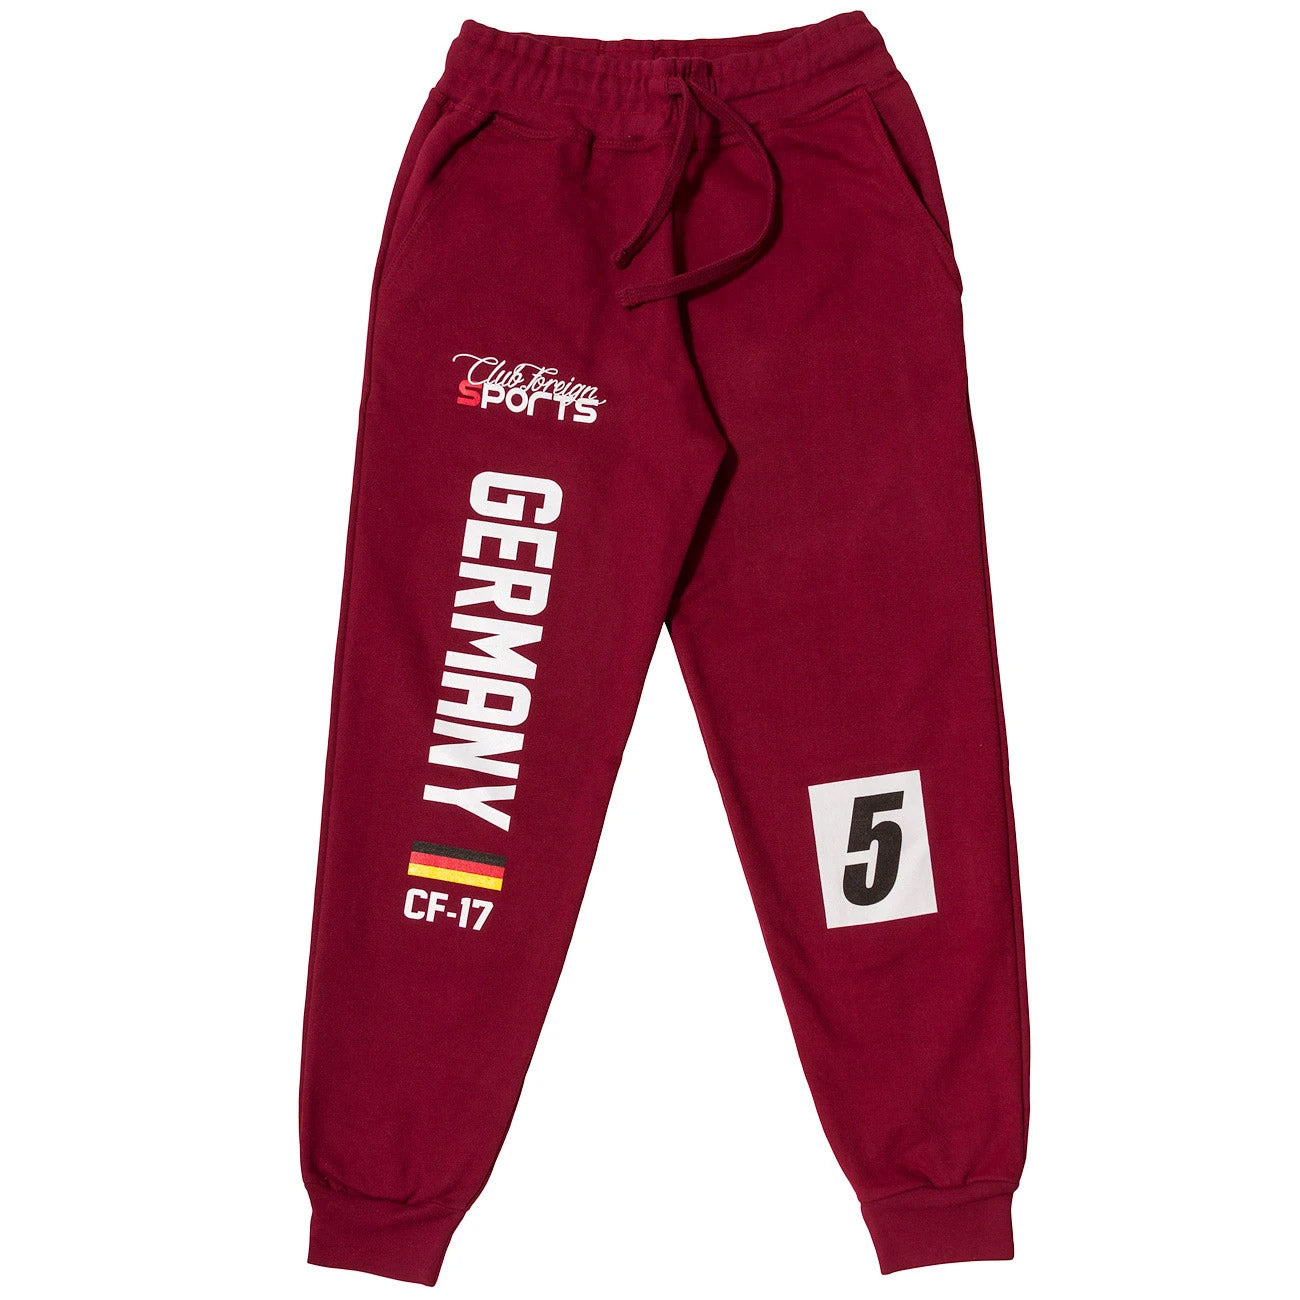 ClubForeign Sports Germany Series Pants Burgundy